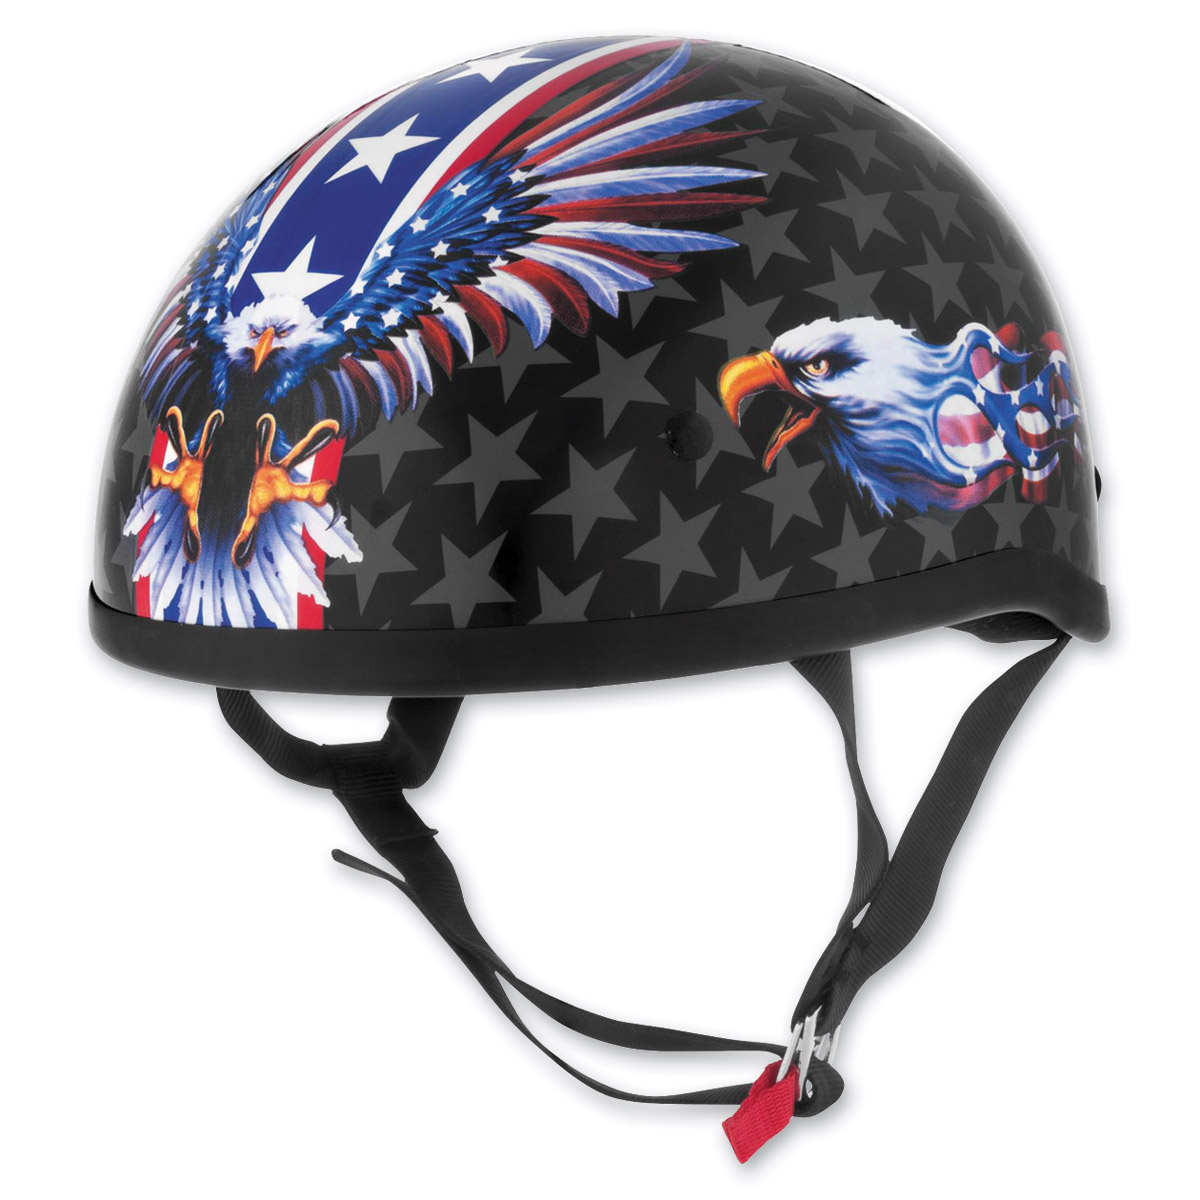 Skid Lid USA Flame Eagle Helmet